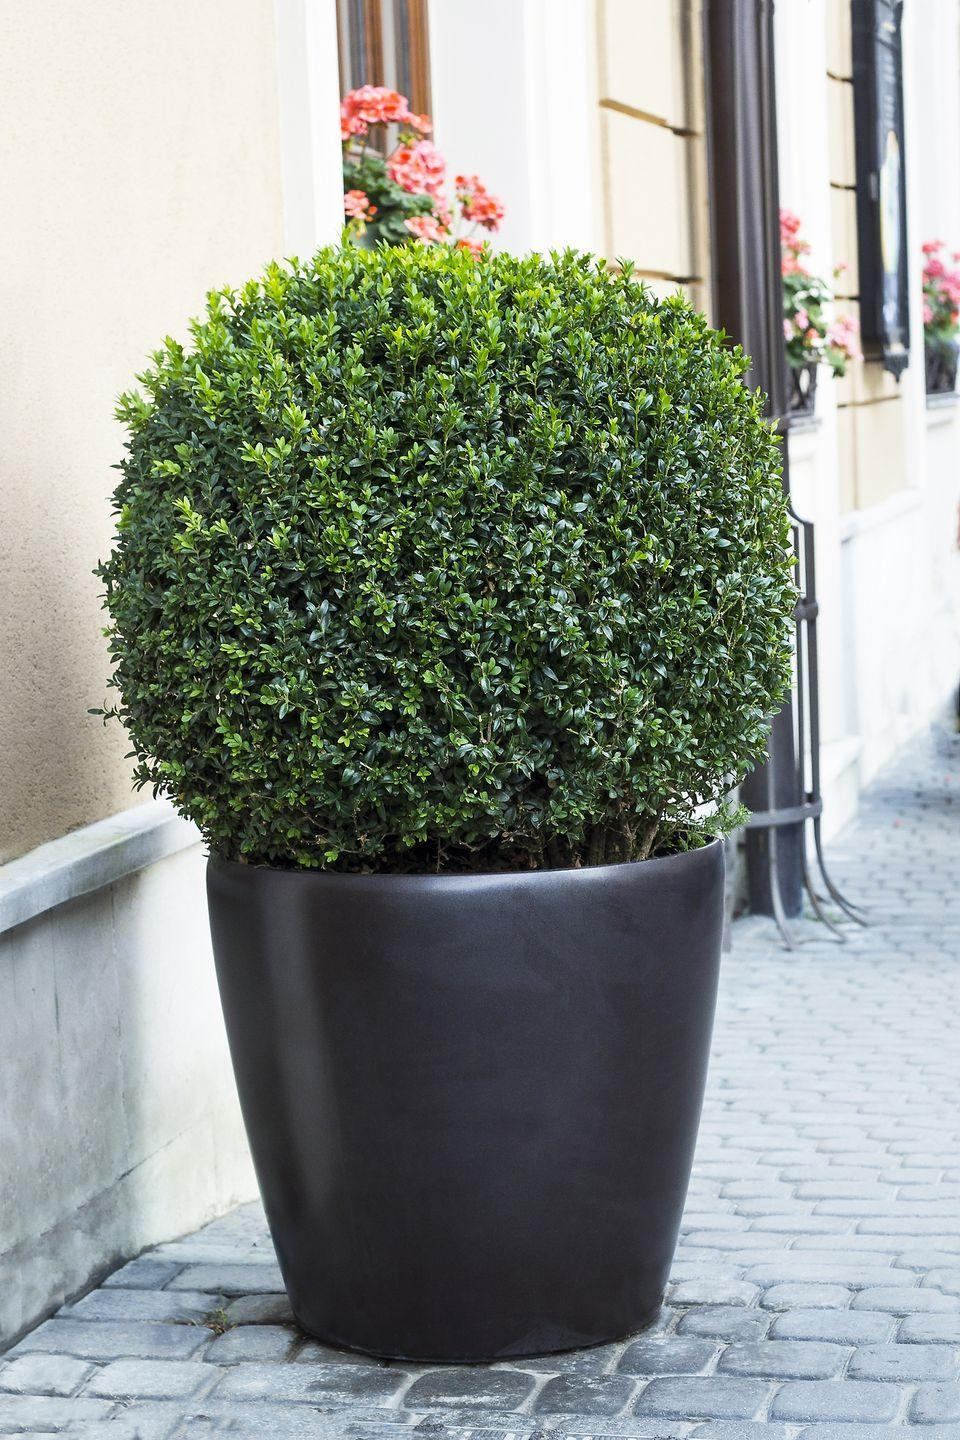 "<p>Boxwoods are evergreens that can be sheared into shapes or left to remain natural. Look for new varieties that maintain their forms without trimming and are more cold tolerant, such as North Star and Sprinter. Boxwoods will tolerate a wide range of light conditions from part shade to full sun.</p><p><a class=""link rapid-noclick-resp"" href=""https://www.provenwinners.com/plants/buxus/sprinter-boxwood-buxus-microphylla"" rel=""nofollow noopener"" target=""_blank"" data-ylk=""slk:SHOP NOW"">SHOP NOW</a></p>"